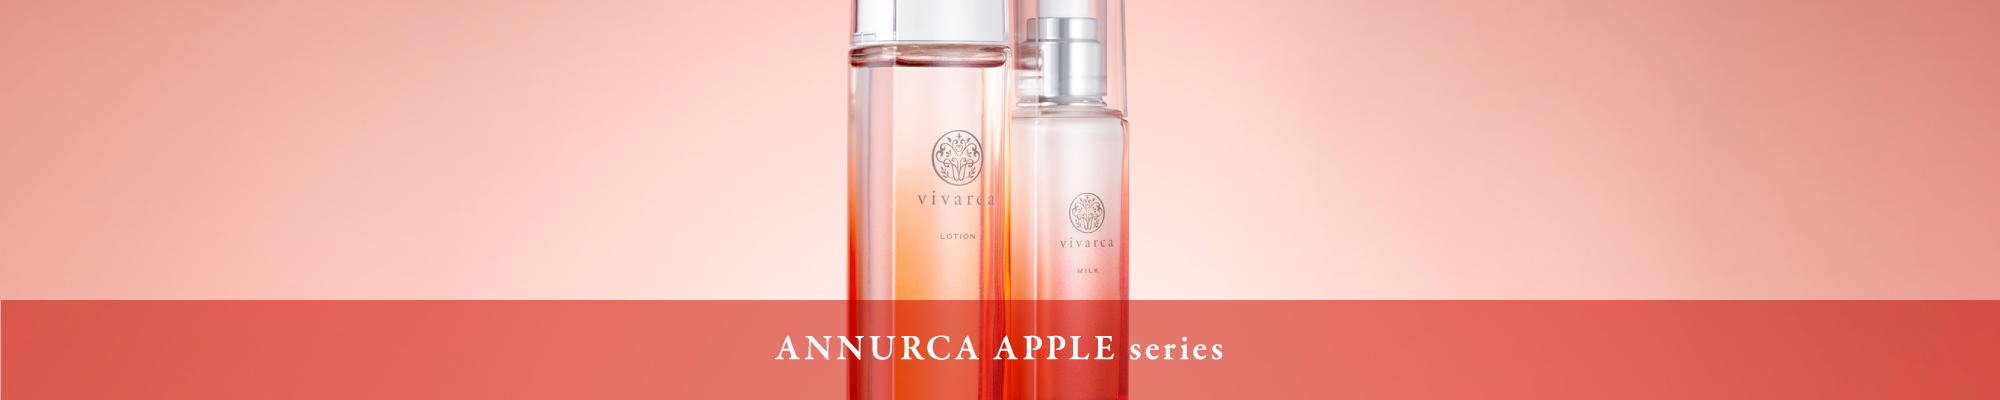 ANNURCA APPLE series